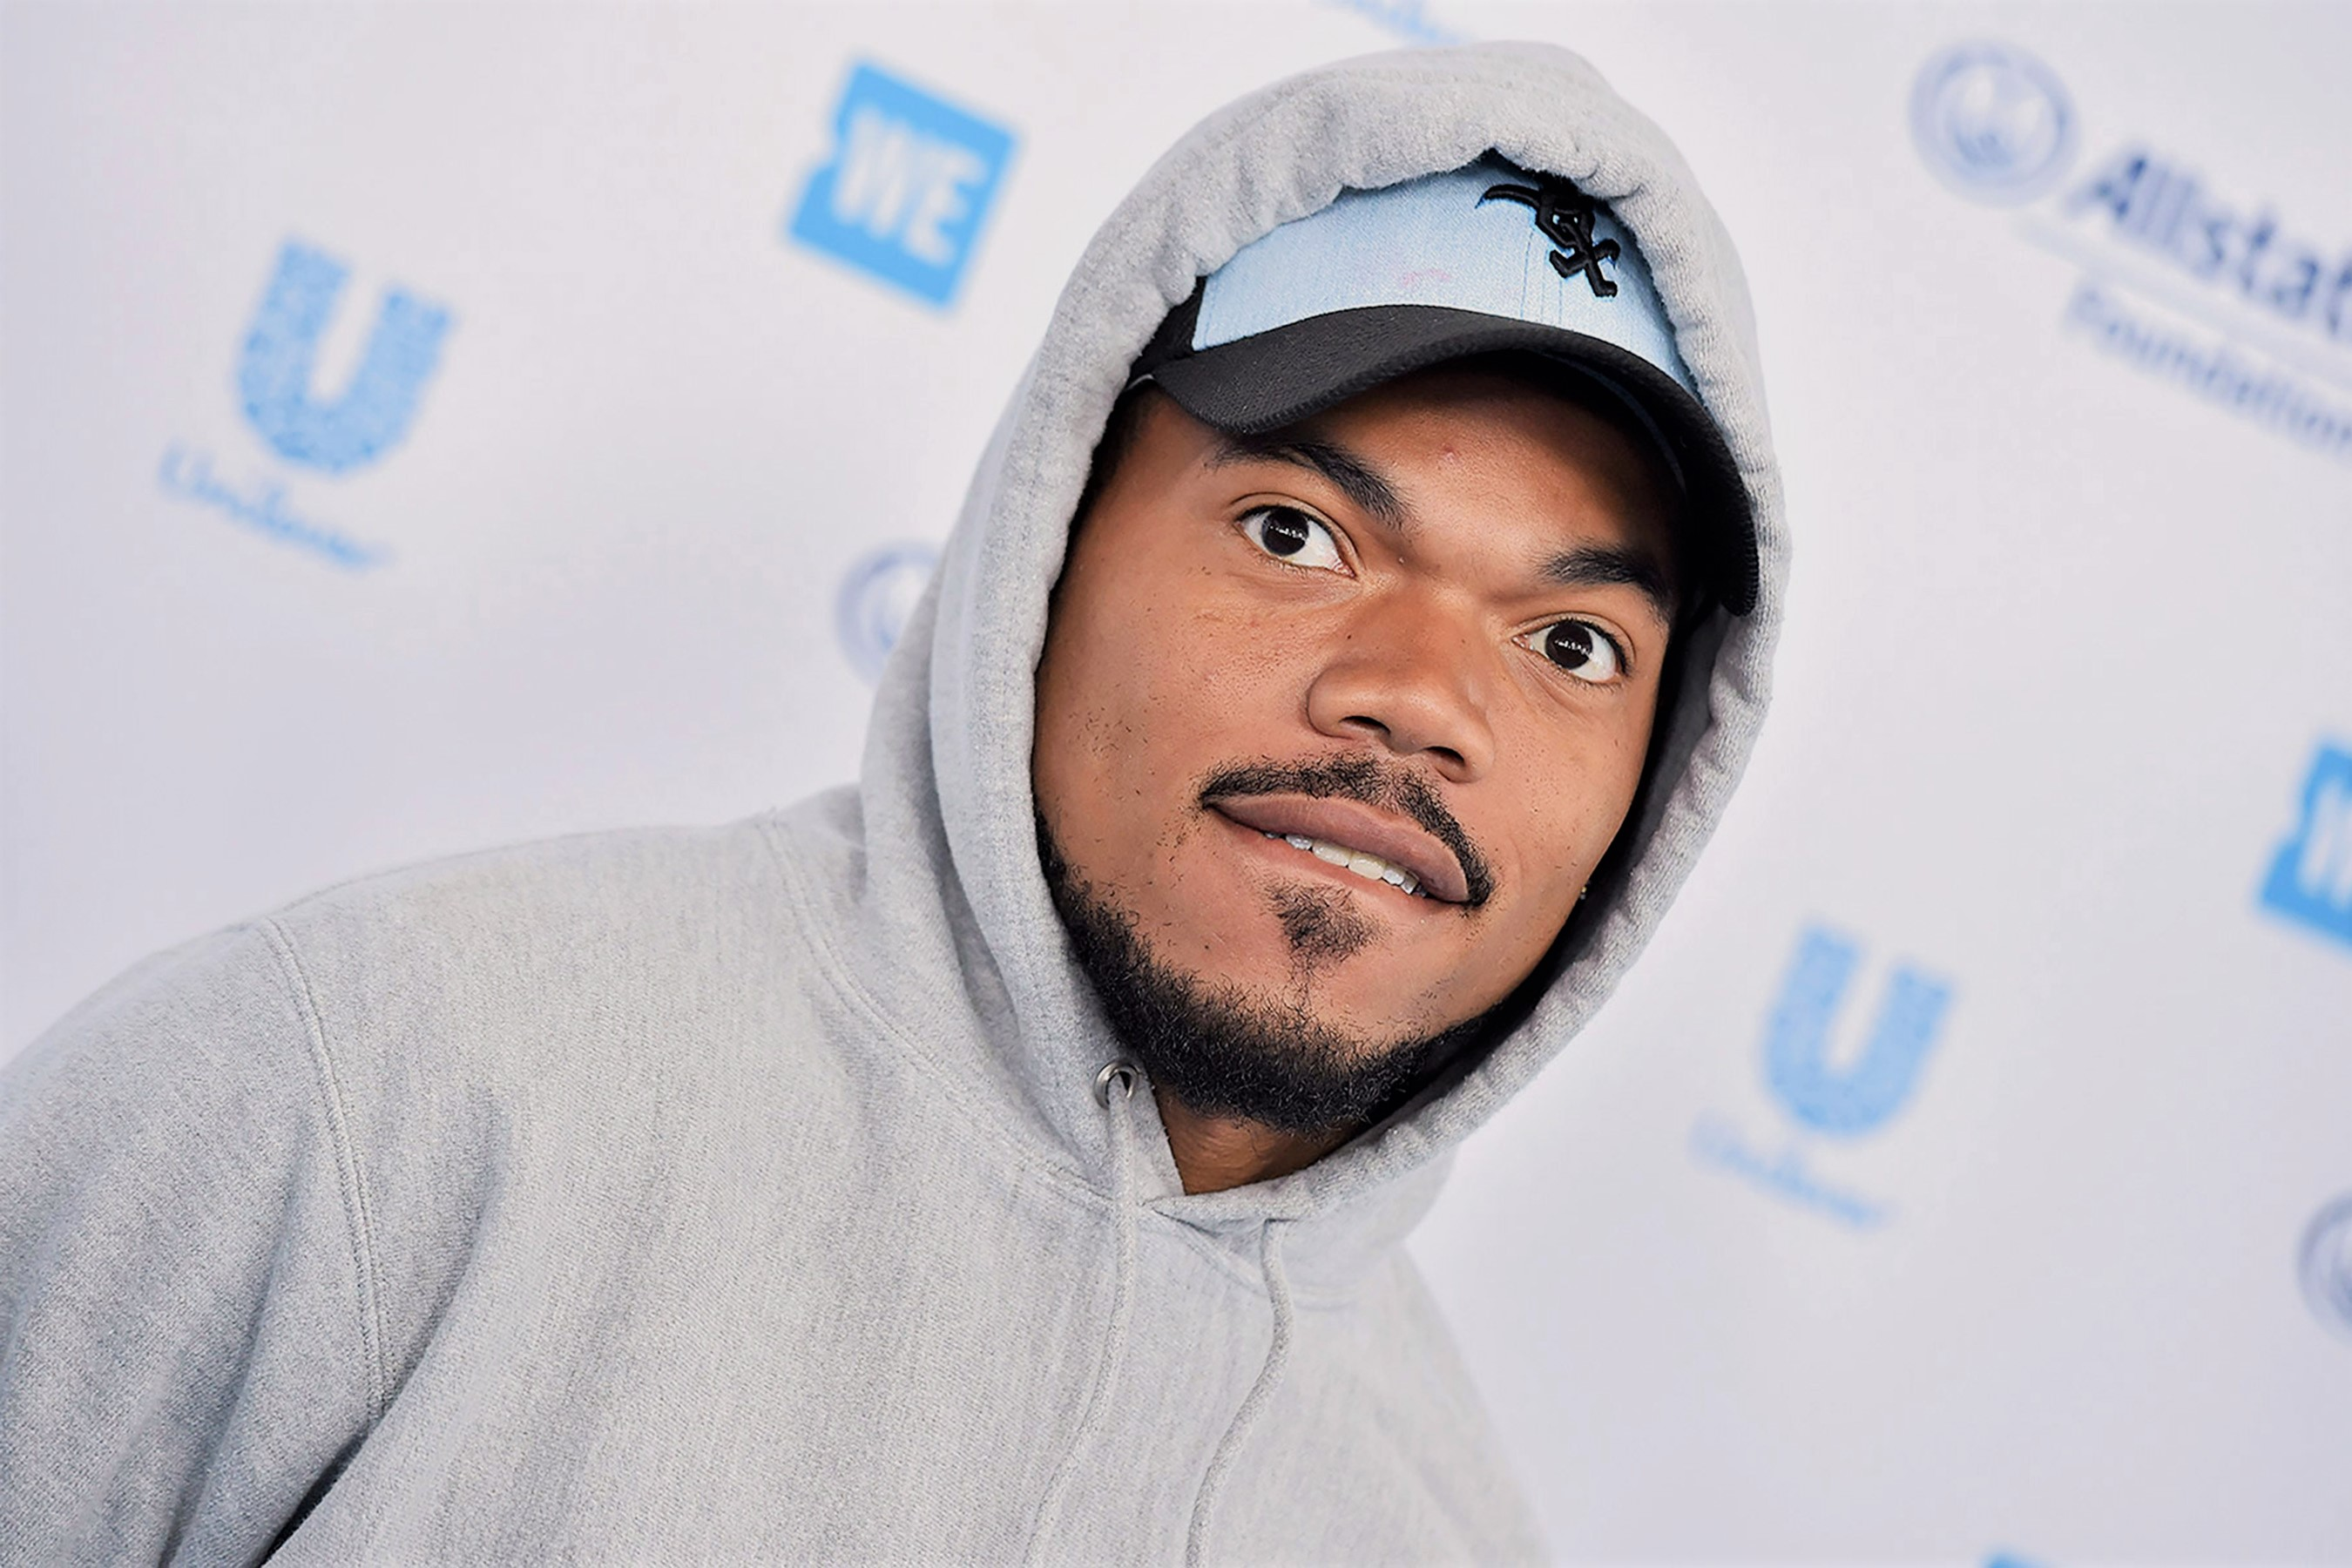 Chance the Rapper Makes Desperate Plea to Find a Kidney Donor to Save Aunt: 'I Really Need Help'